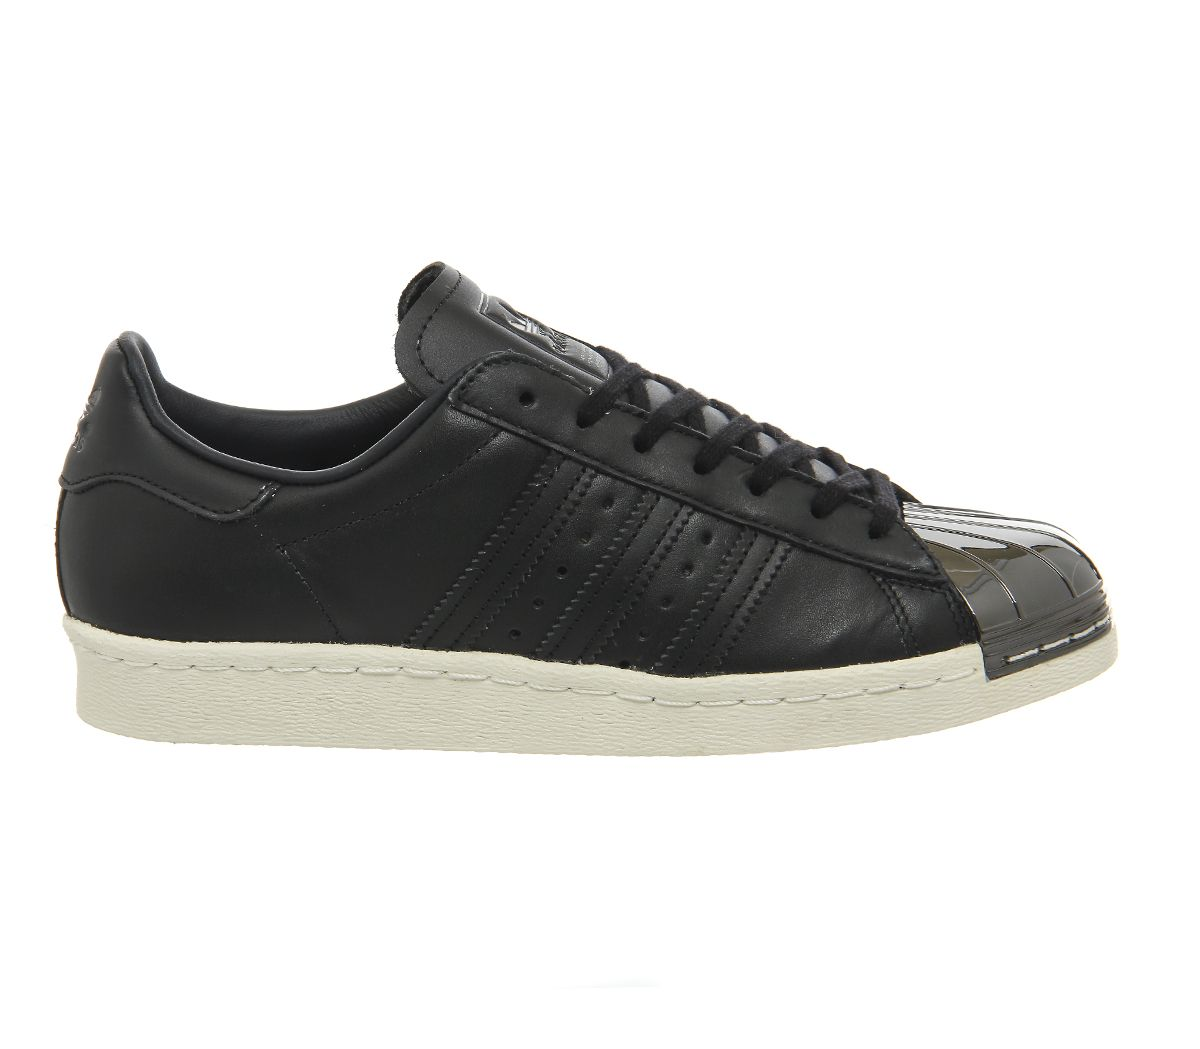 adidas superstar 80s metal toe uk